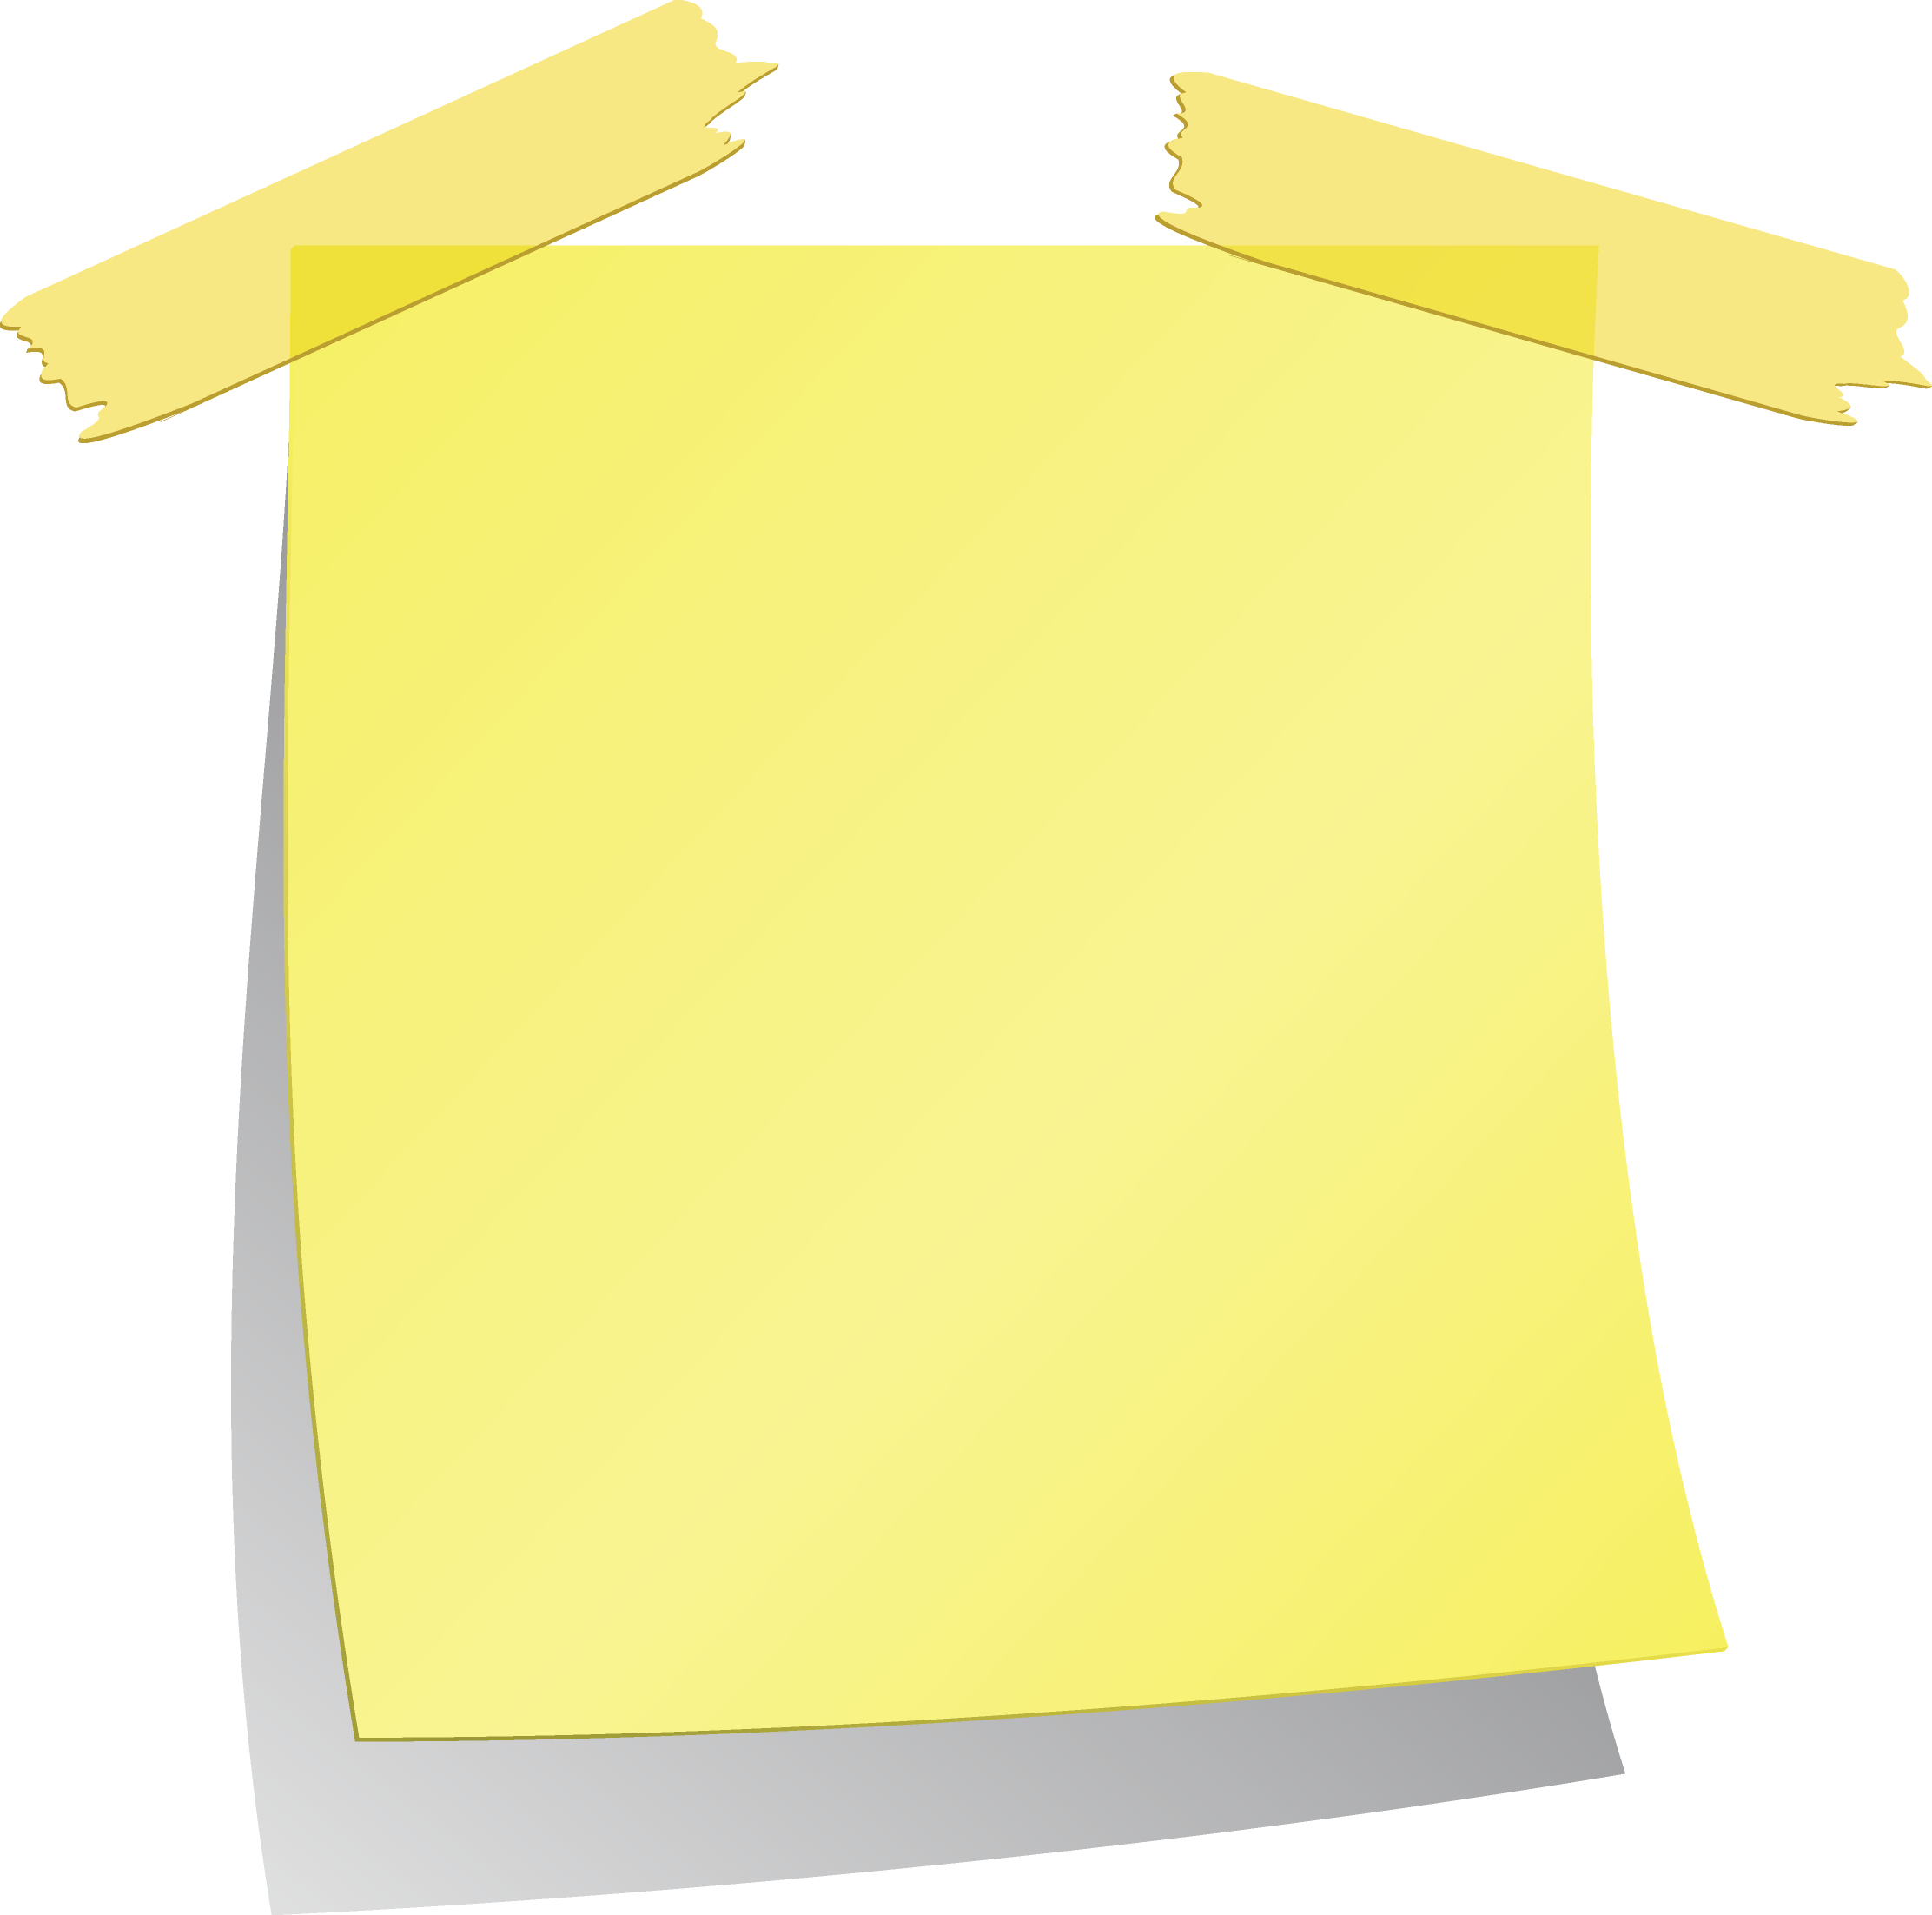 Yellow Sticky Notes Png Image Yellow Sticky Notes Sticky Notes Sticky Notes Collection